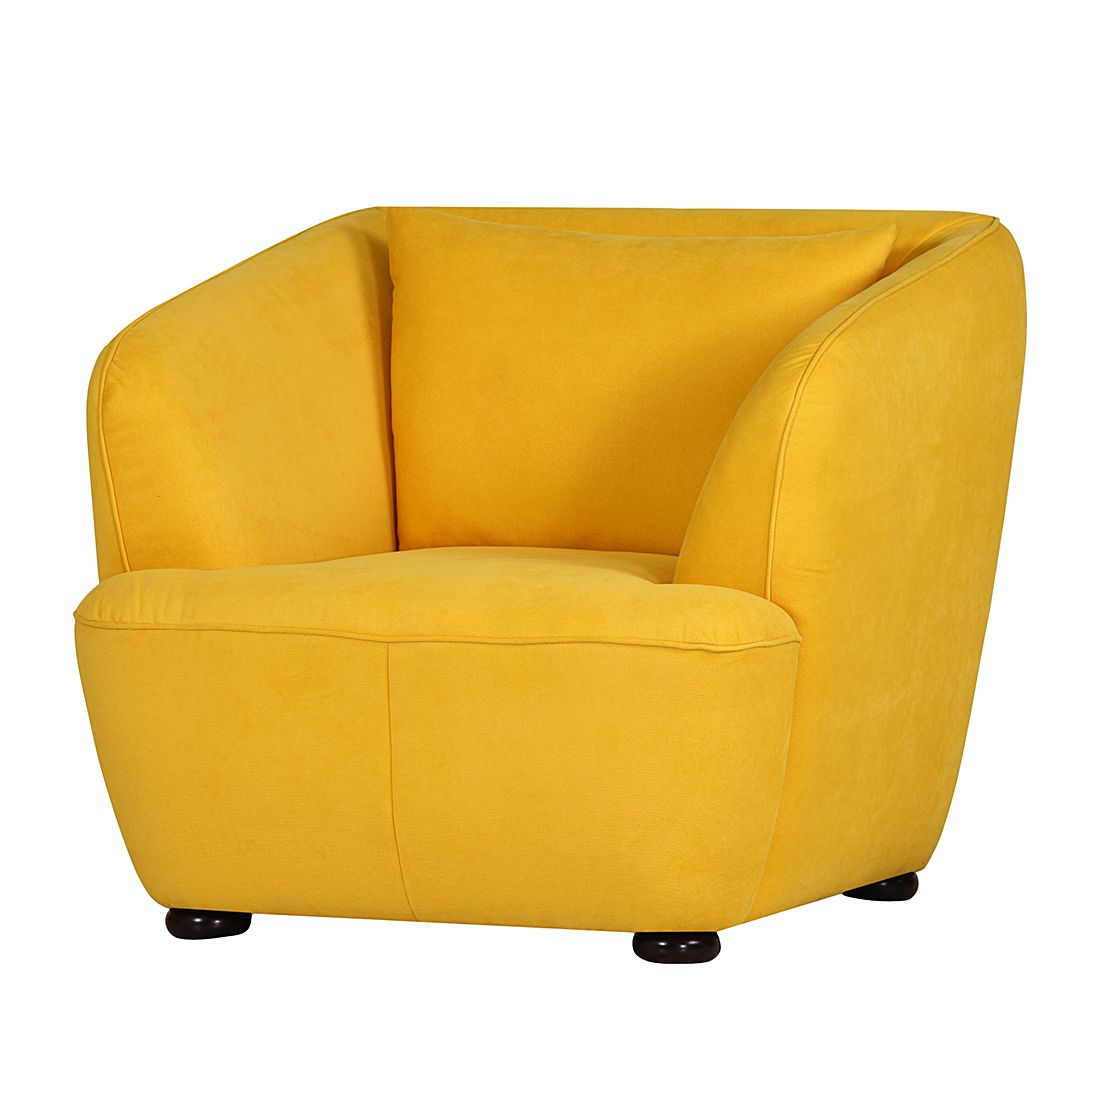 fauteuil sixties tissu jaune studio monroe par studio monroe chez home24 fr. Black Bedroom Furniture Sets. Home Design Ideas